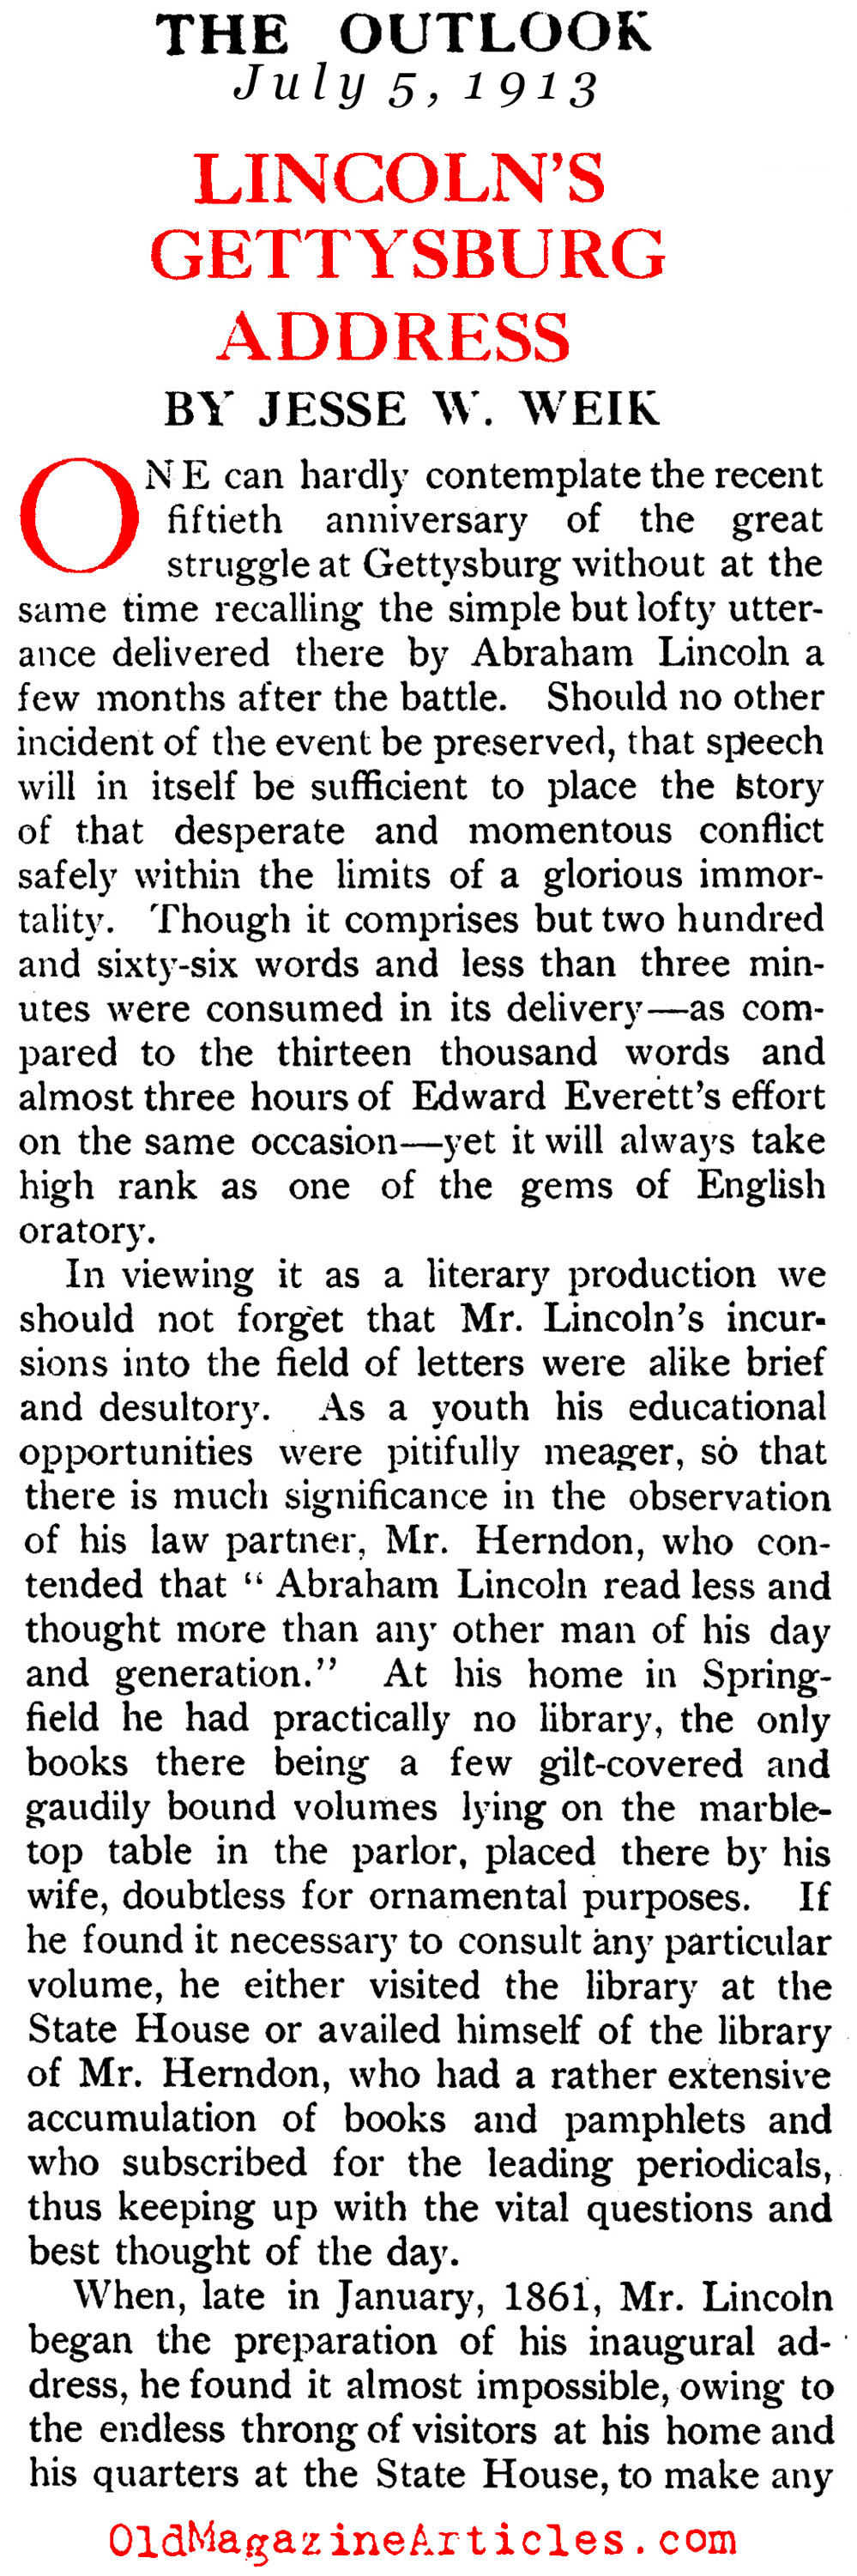 A Study of the Gettysburg Address   (The Outlook, 1913)